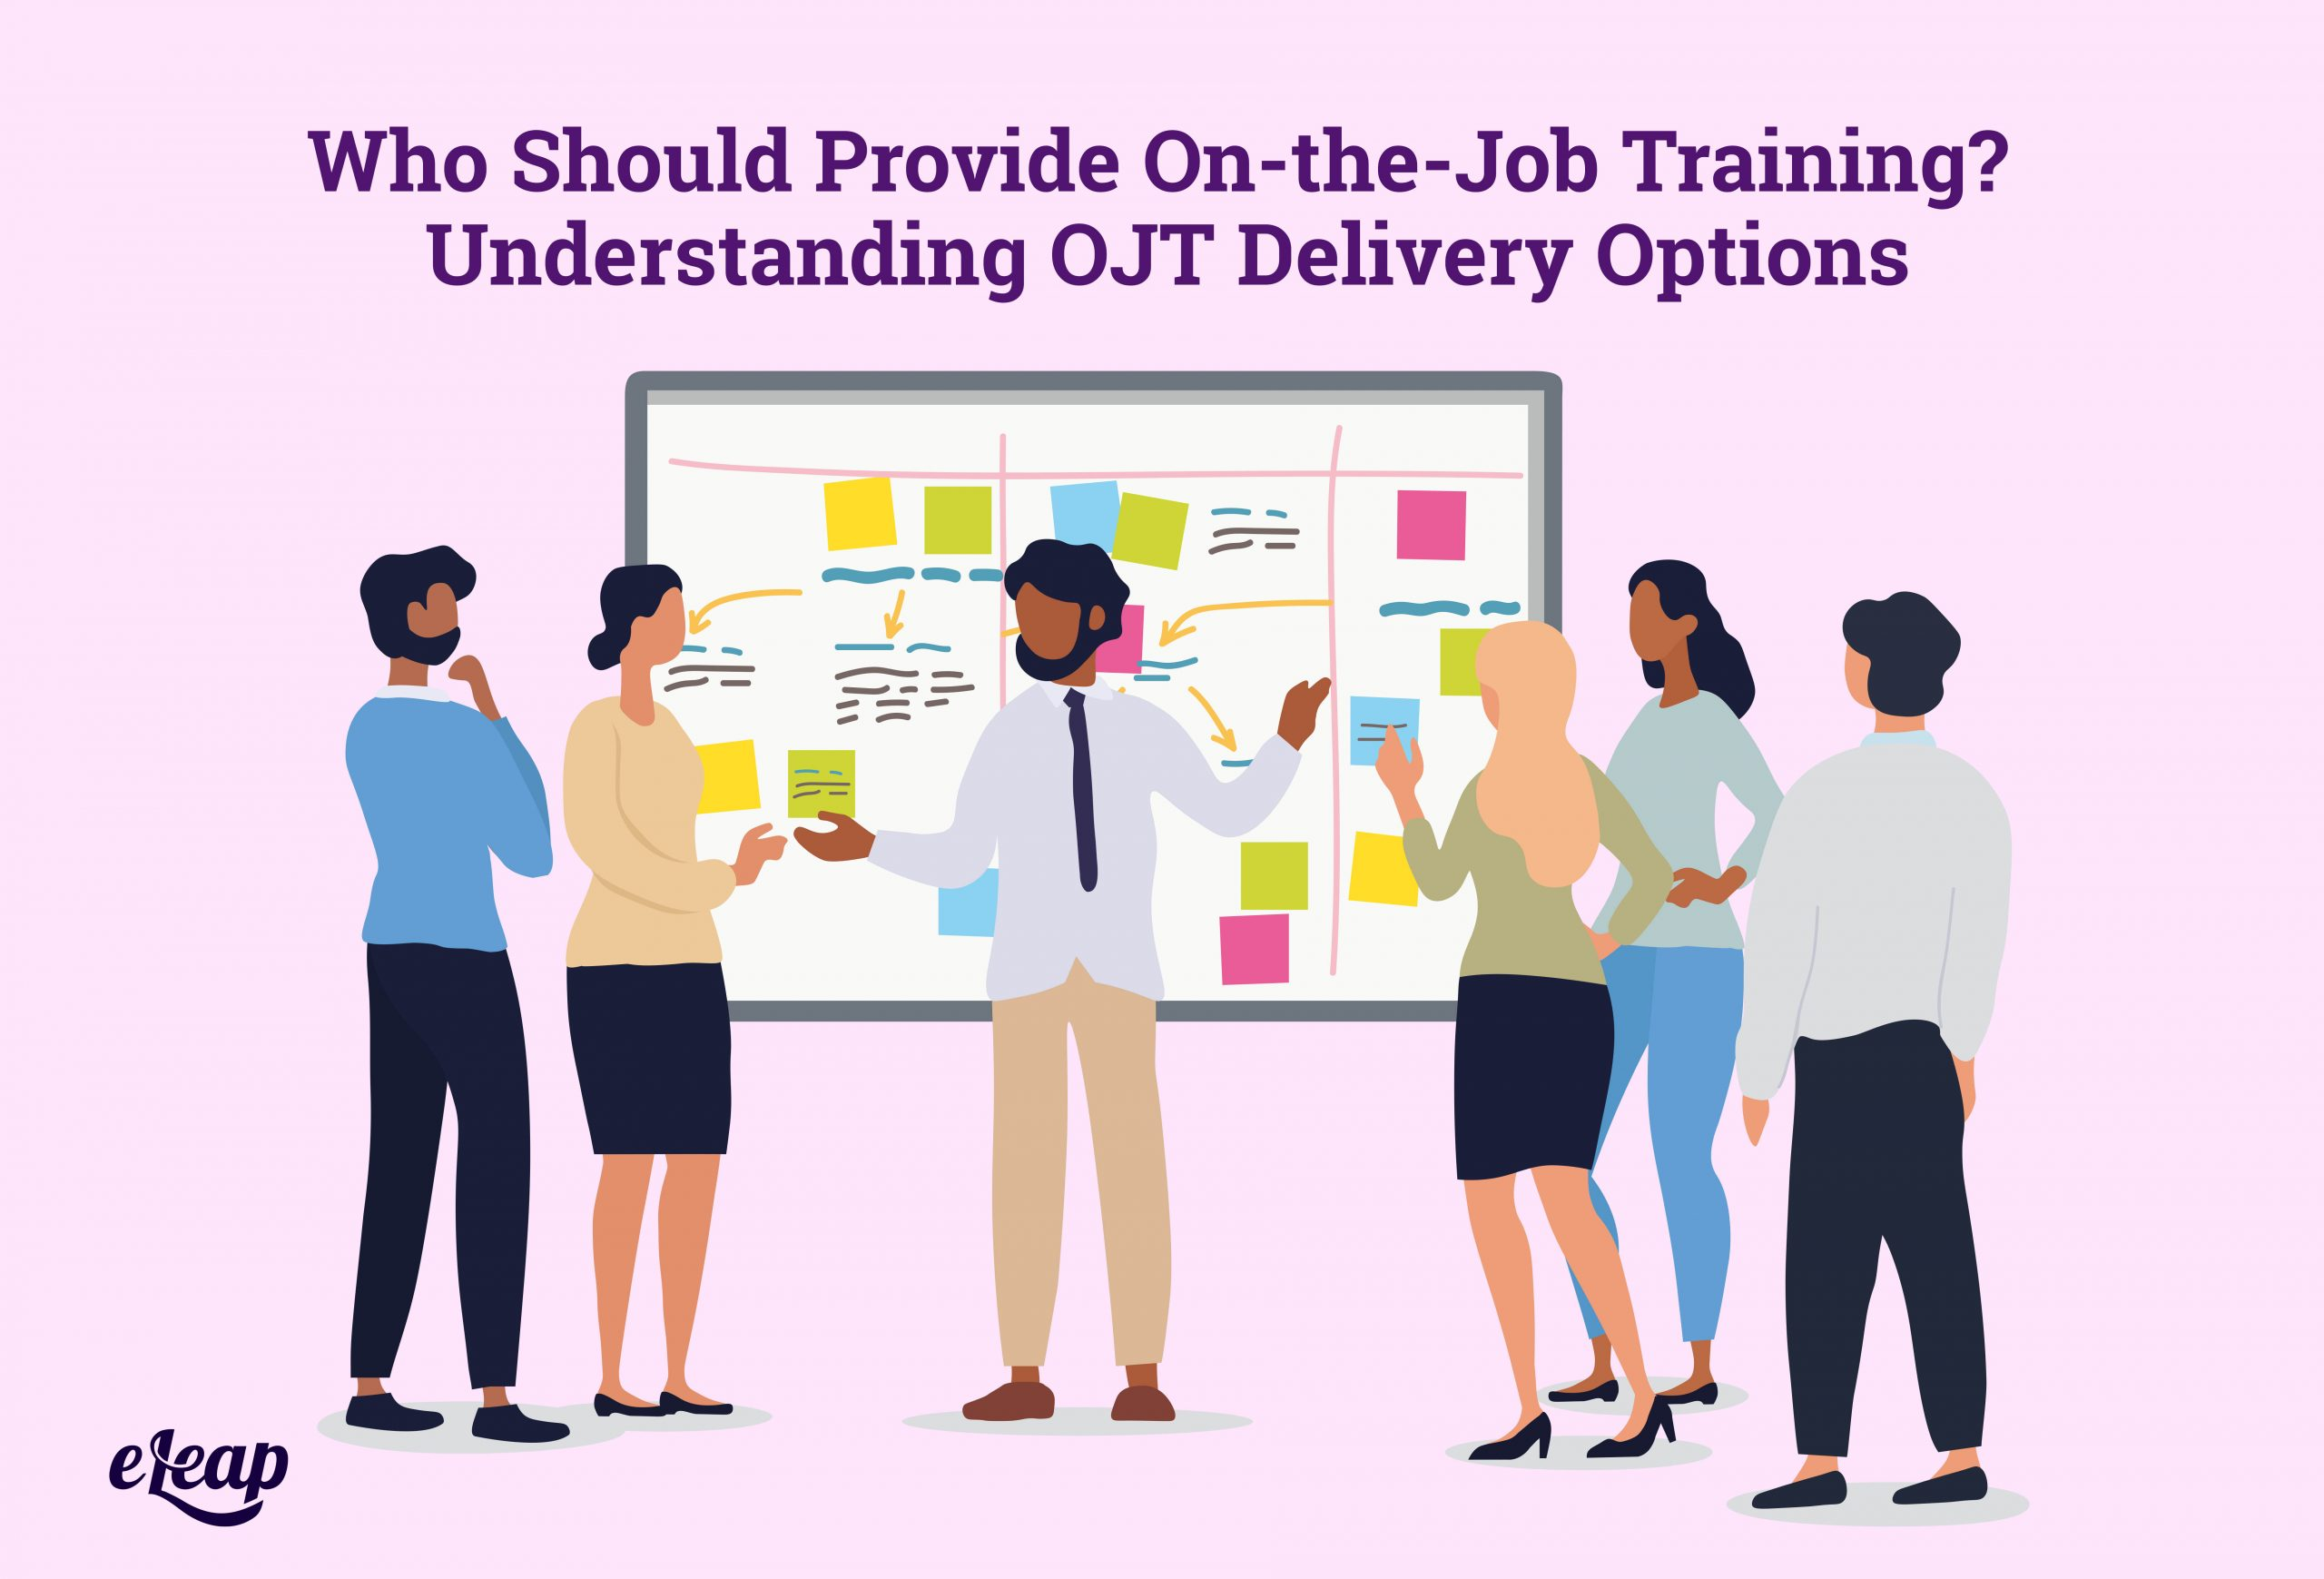 Who Should Provide On-the-Job Training? Understanding OJT Delivery Options